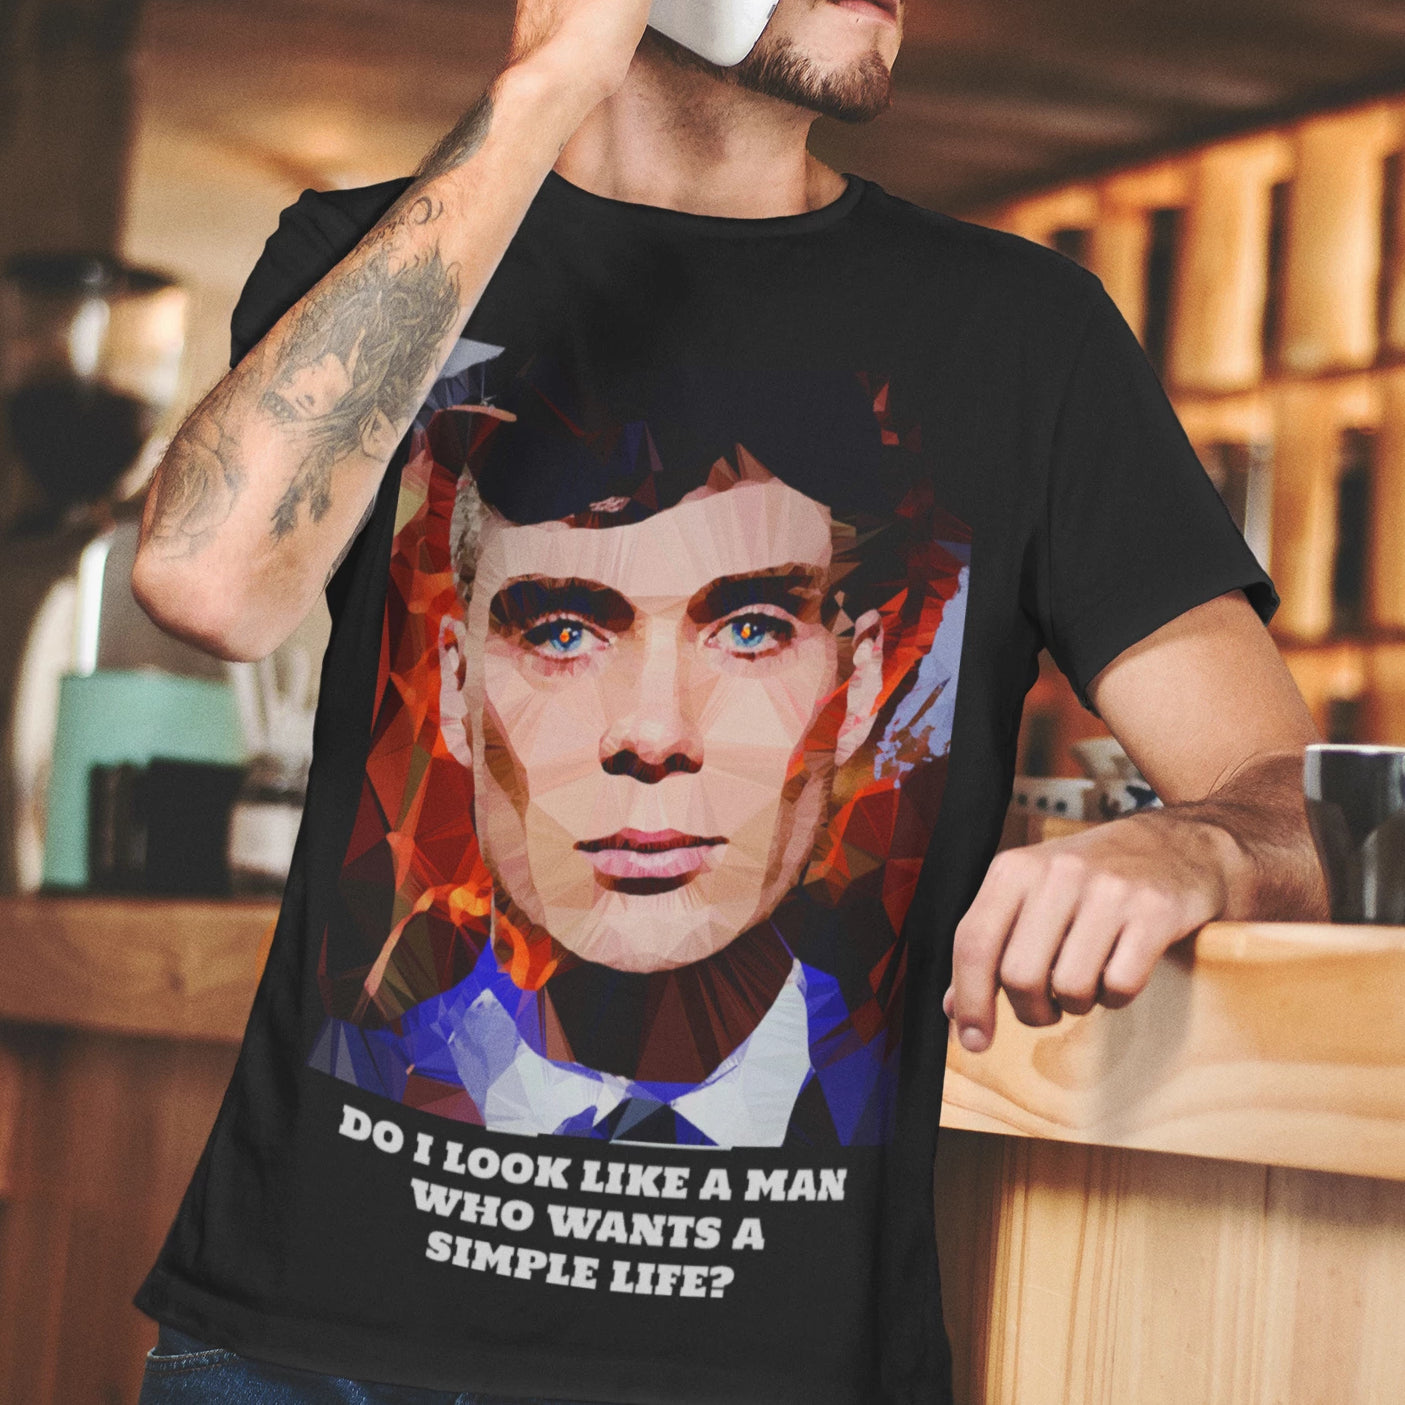 Thomas Shelby (I) by Baiba Auria: Short-Sleeve Unisex T-Shirt - Egoiste Gallery - Art Gallery in Manchester City Centre